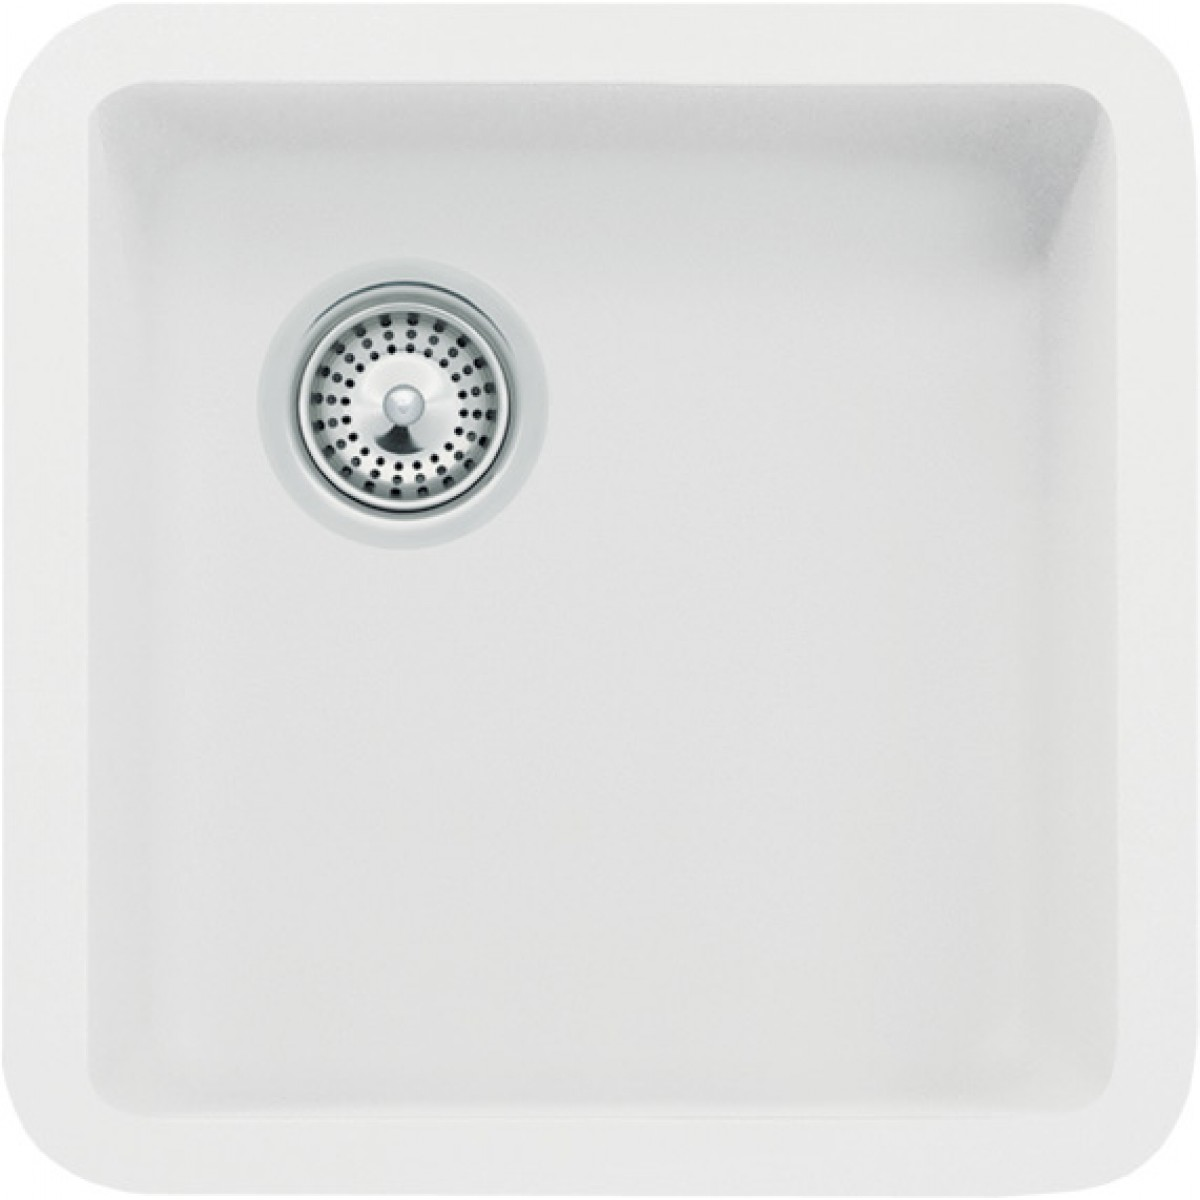 White Quartz Composite Undermount Kitchen Sink 14 7 8 X Inch